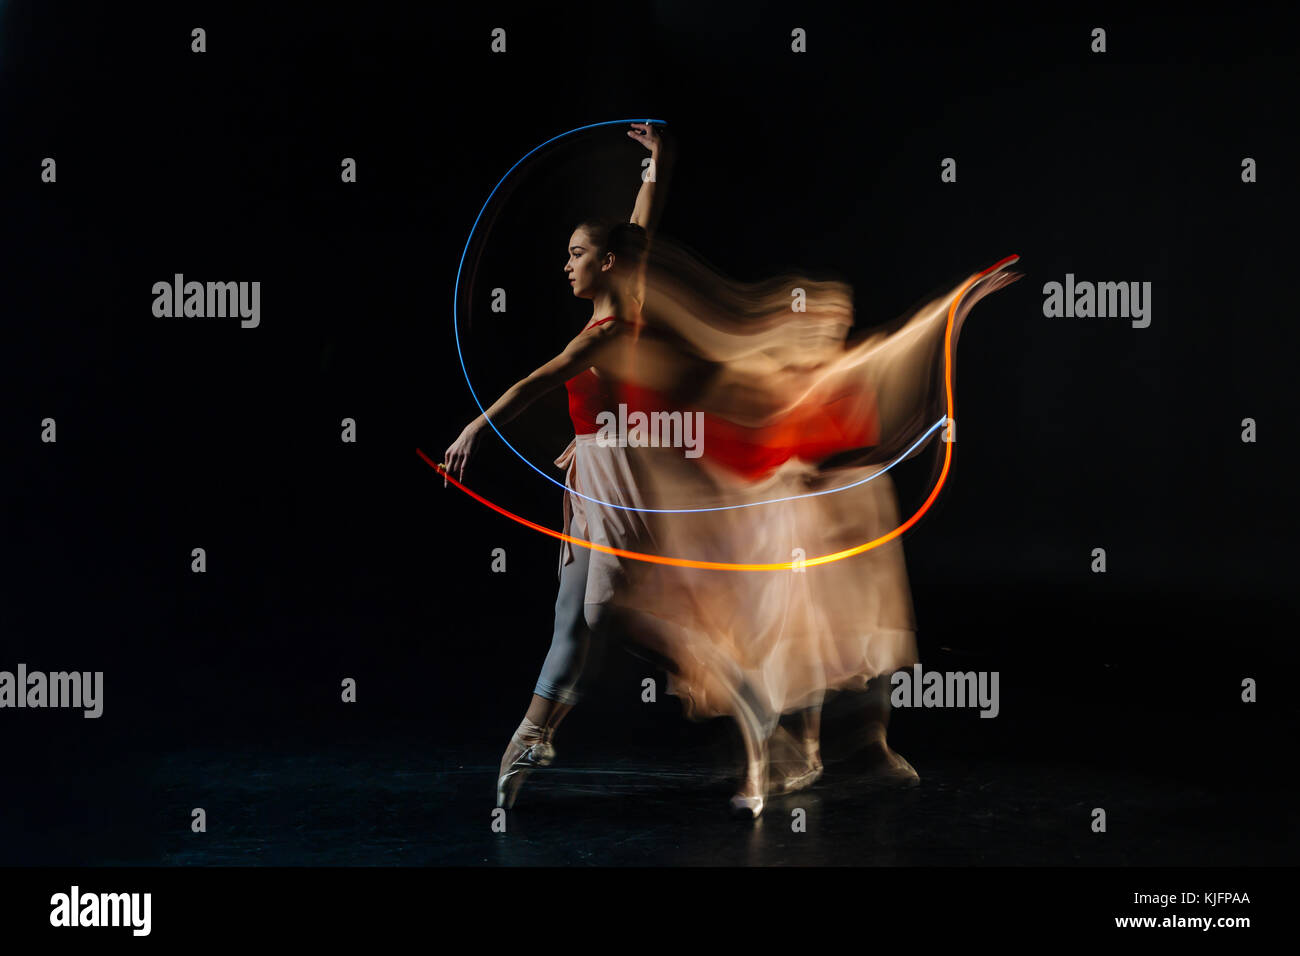 Serious well built dancer practicing her movements - Stock Image